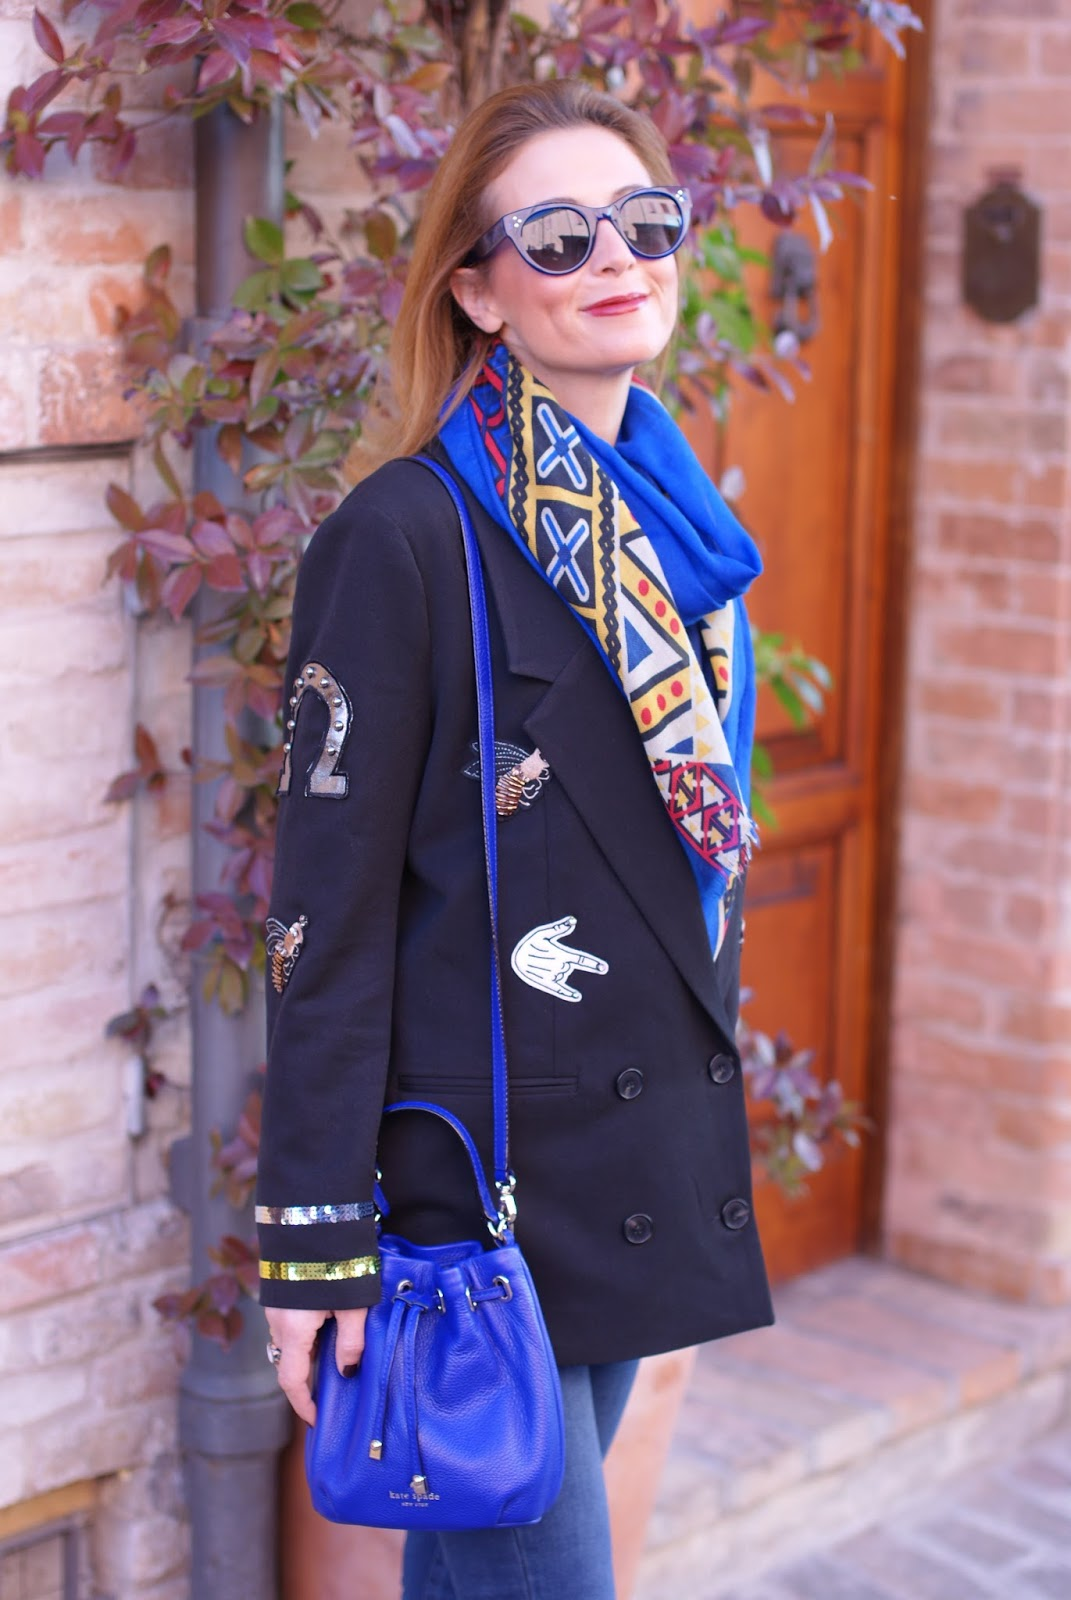 Vogos appliqued blazer and Kate Spade bucket bag on Fashion and Cookies fashion blog, fashion blogger style